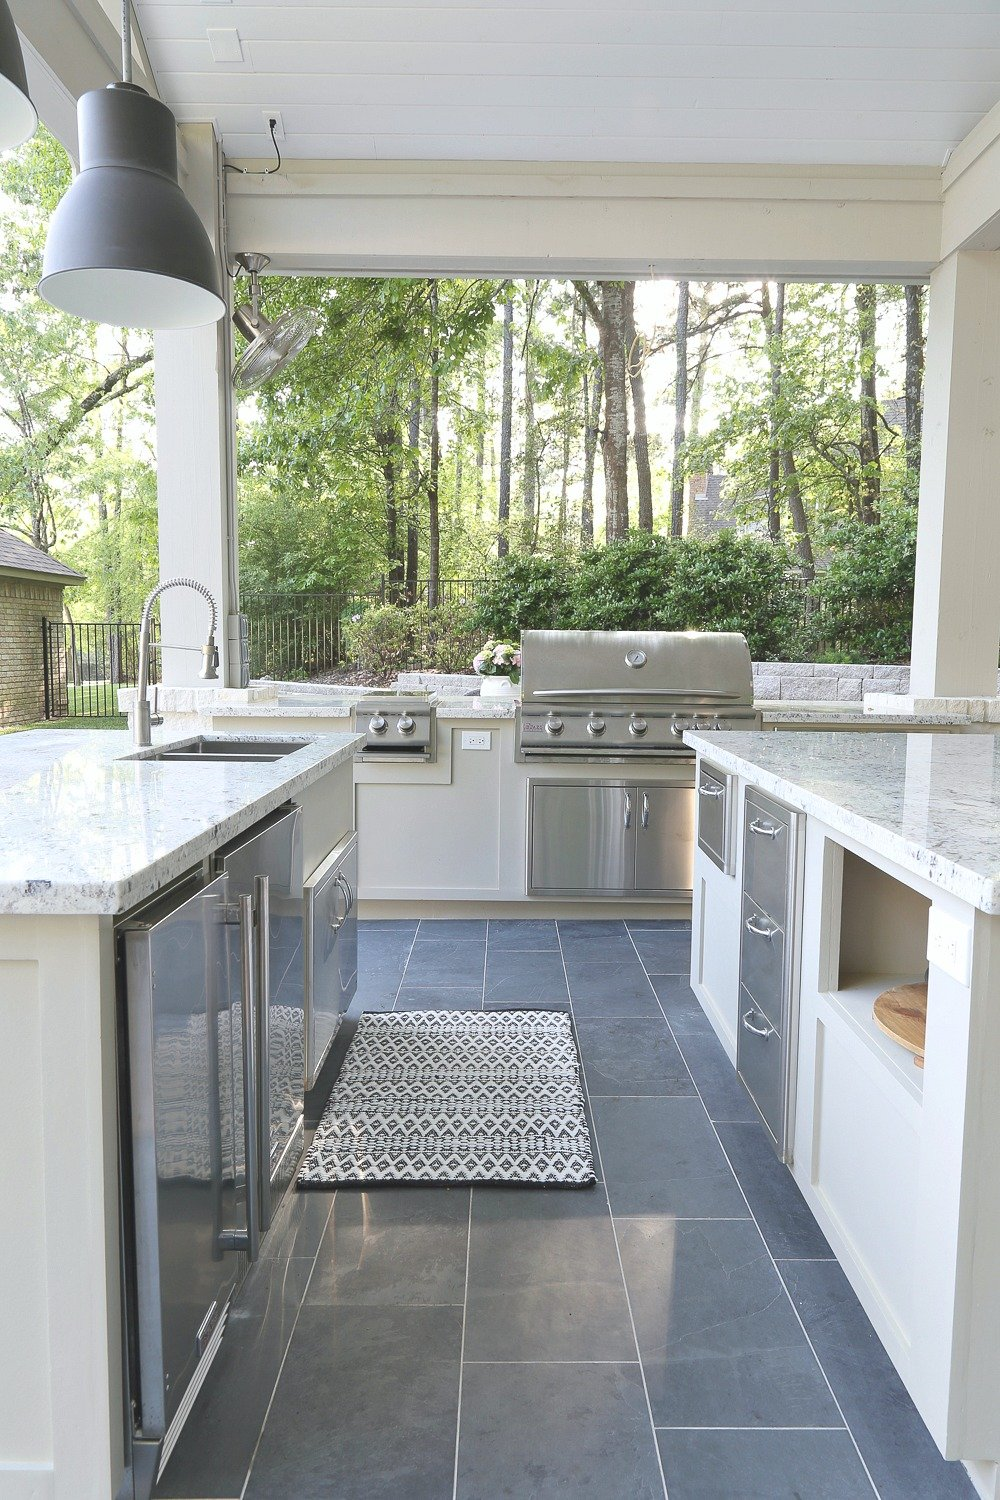 Outdoor kitchen with large grill, burners and stainless drawers